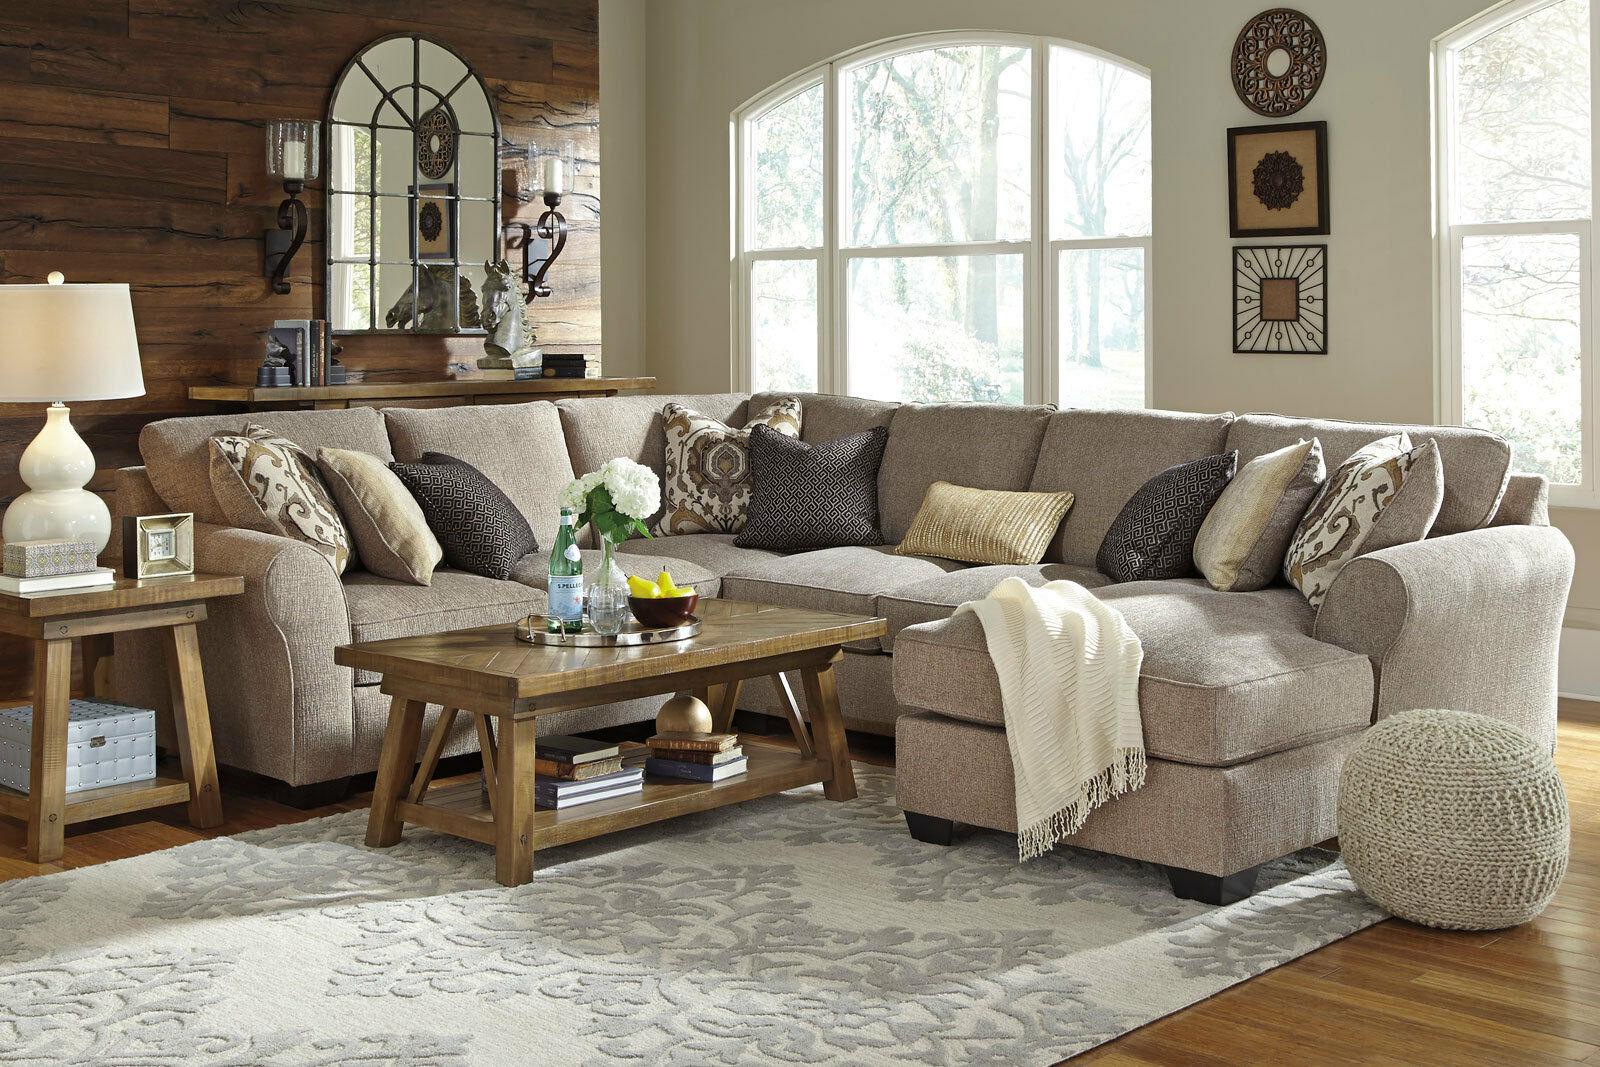 Modern Sectional Couch Living Room Set 4pcs Gray Microfiber Sofa Chaise Ig3b